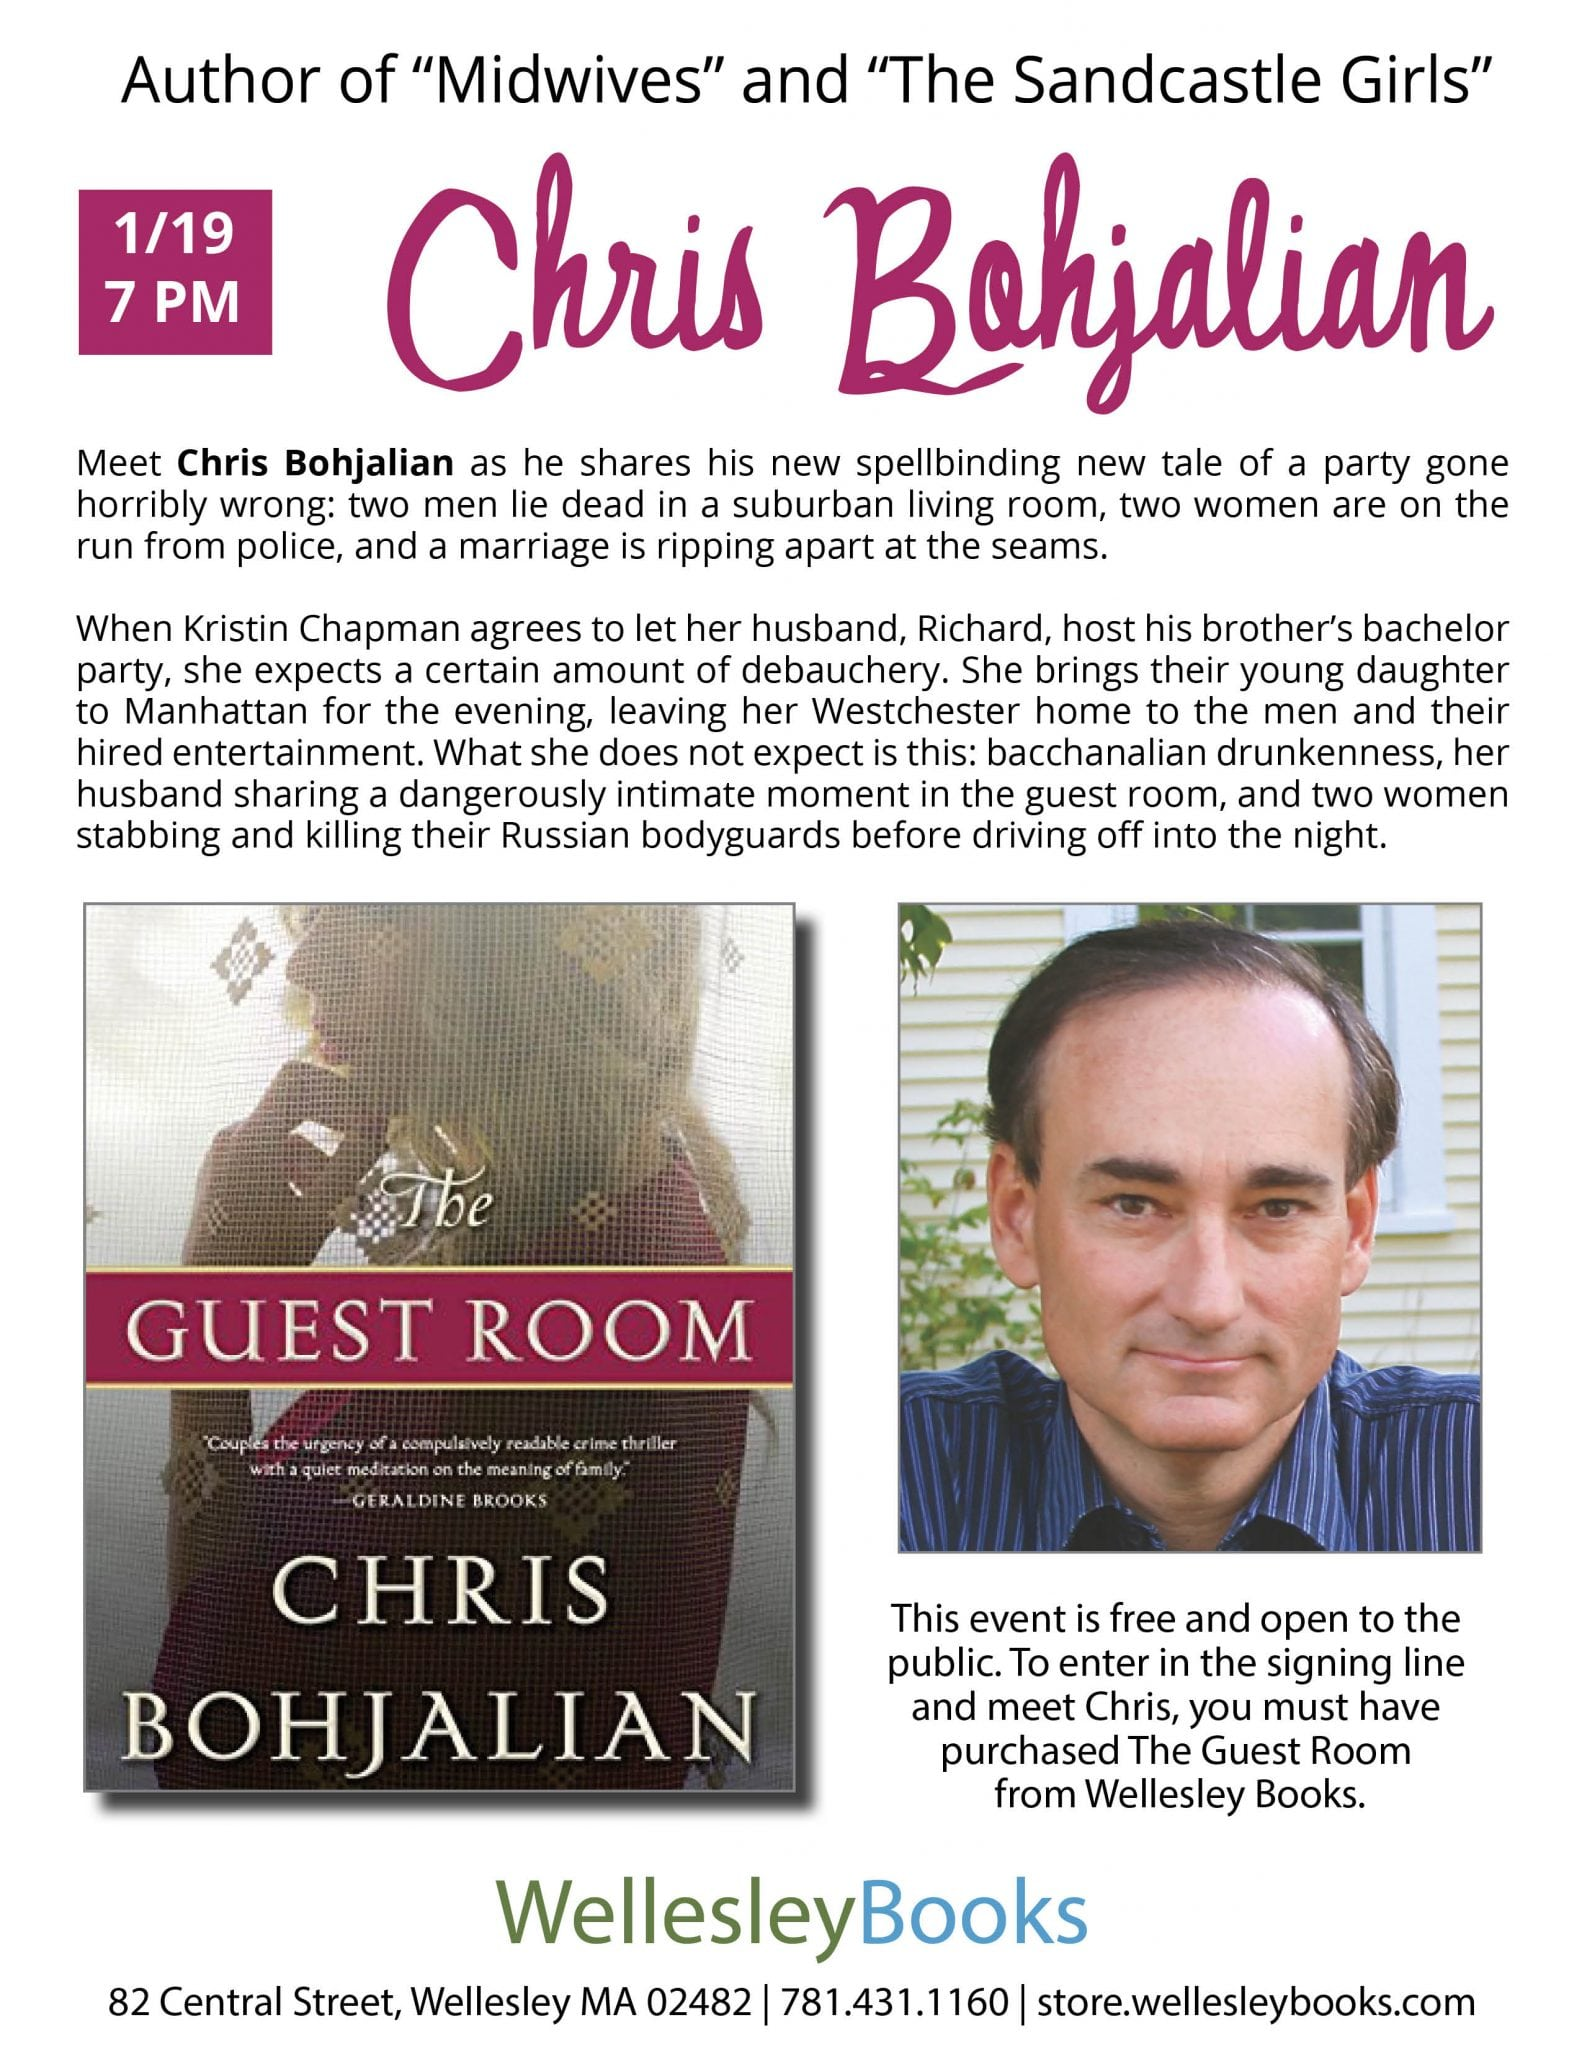 Bohjalian flyer, Wellesley Books